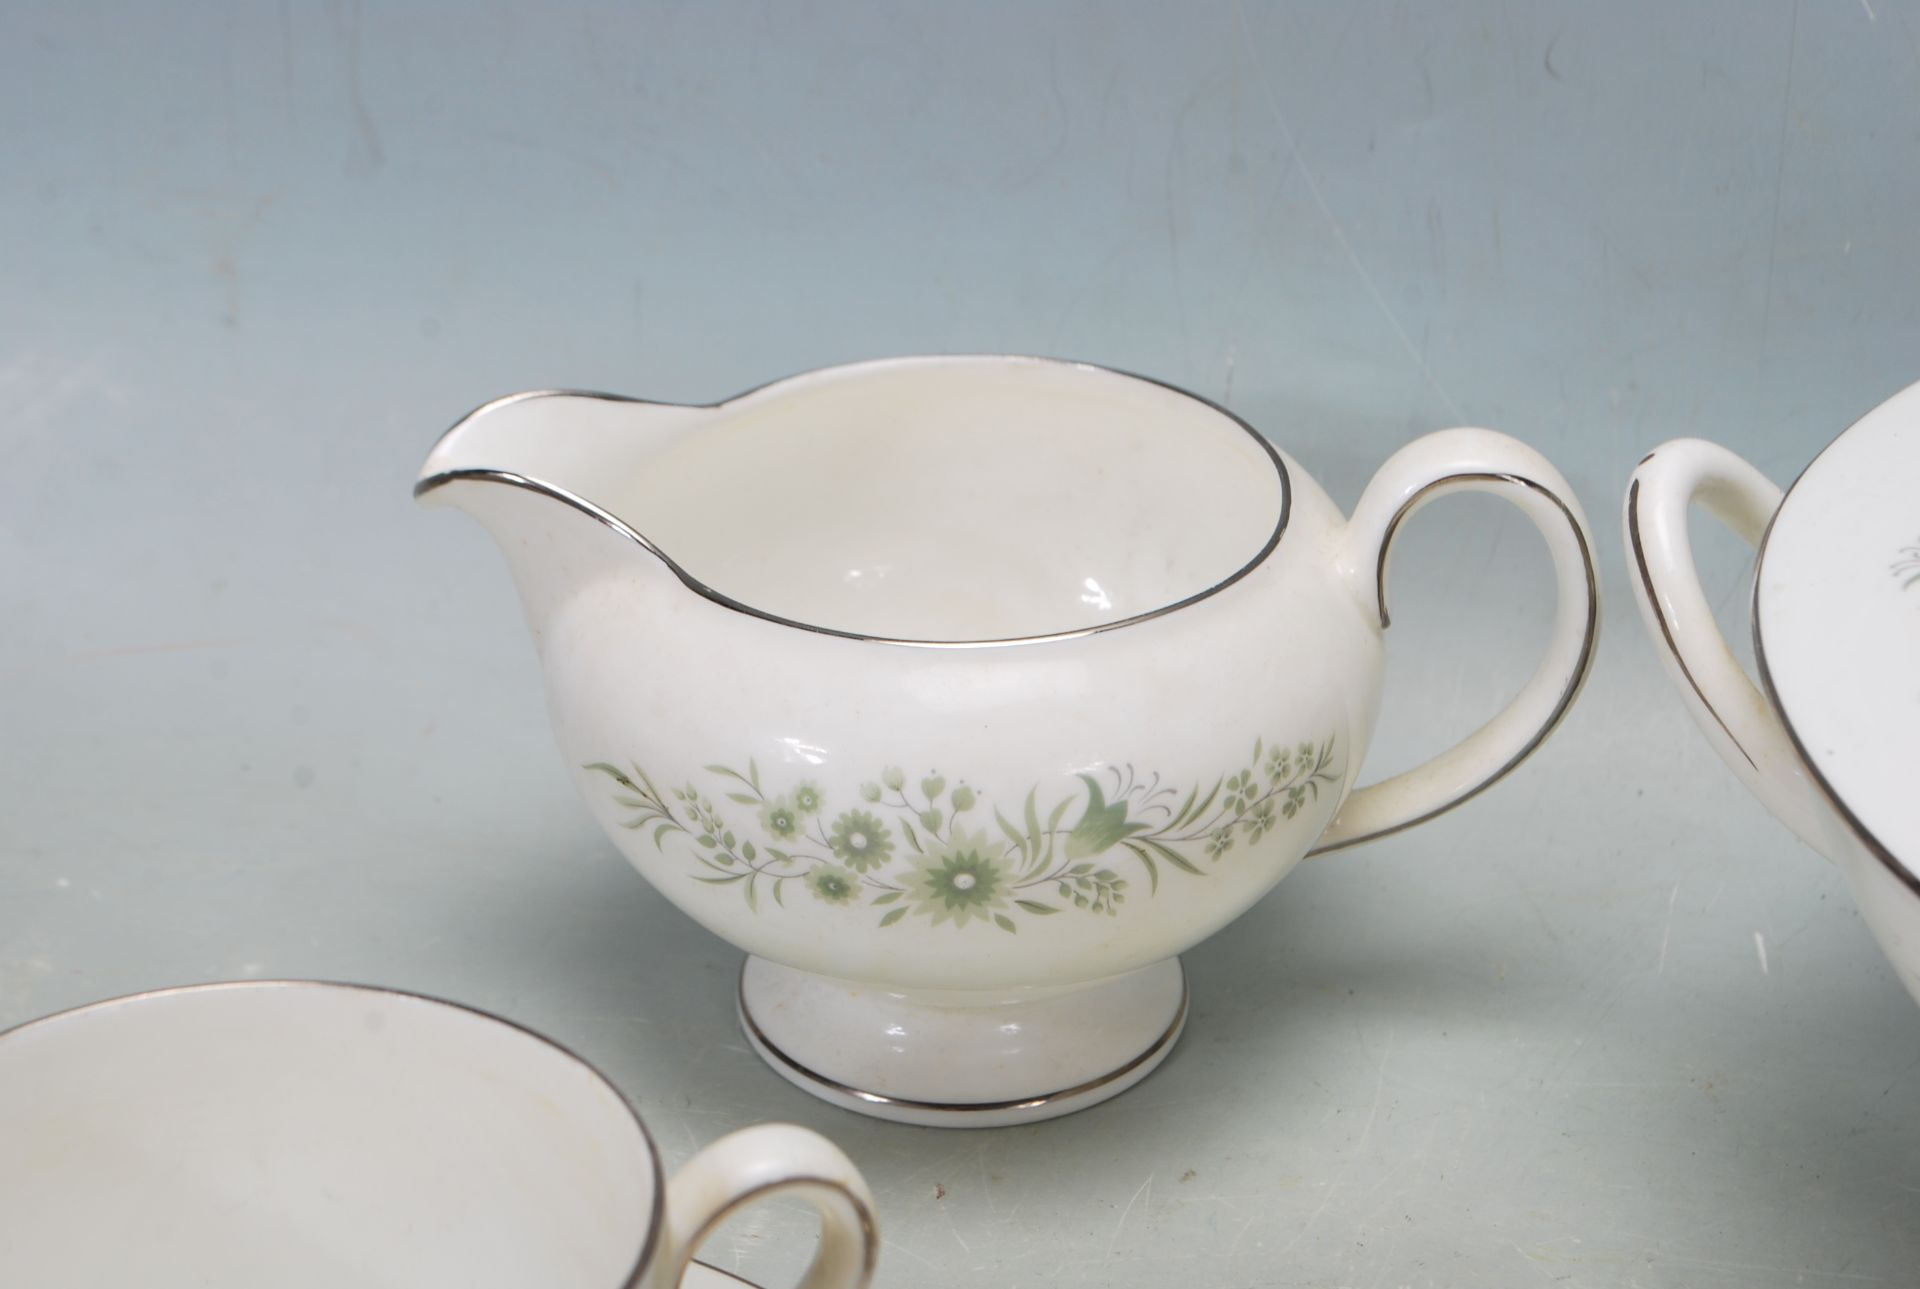 COLLECTION OF LATE 20TH CENTURY WEDGWOOD FINE BONE CHINA - Image 7 of 9